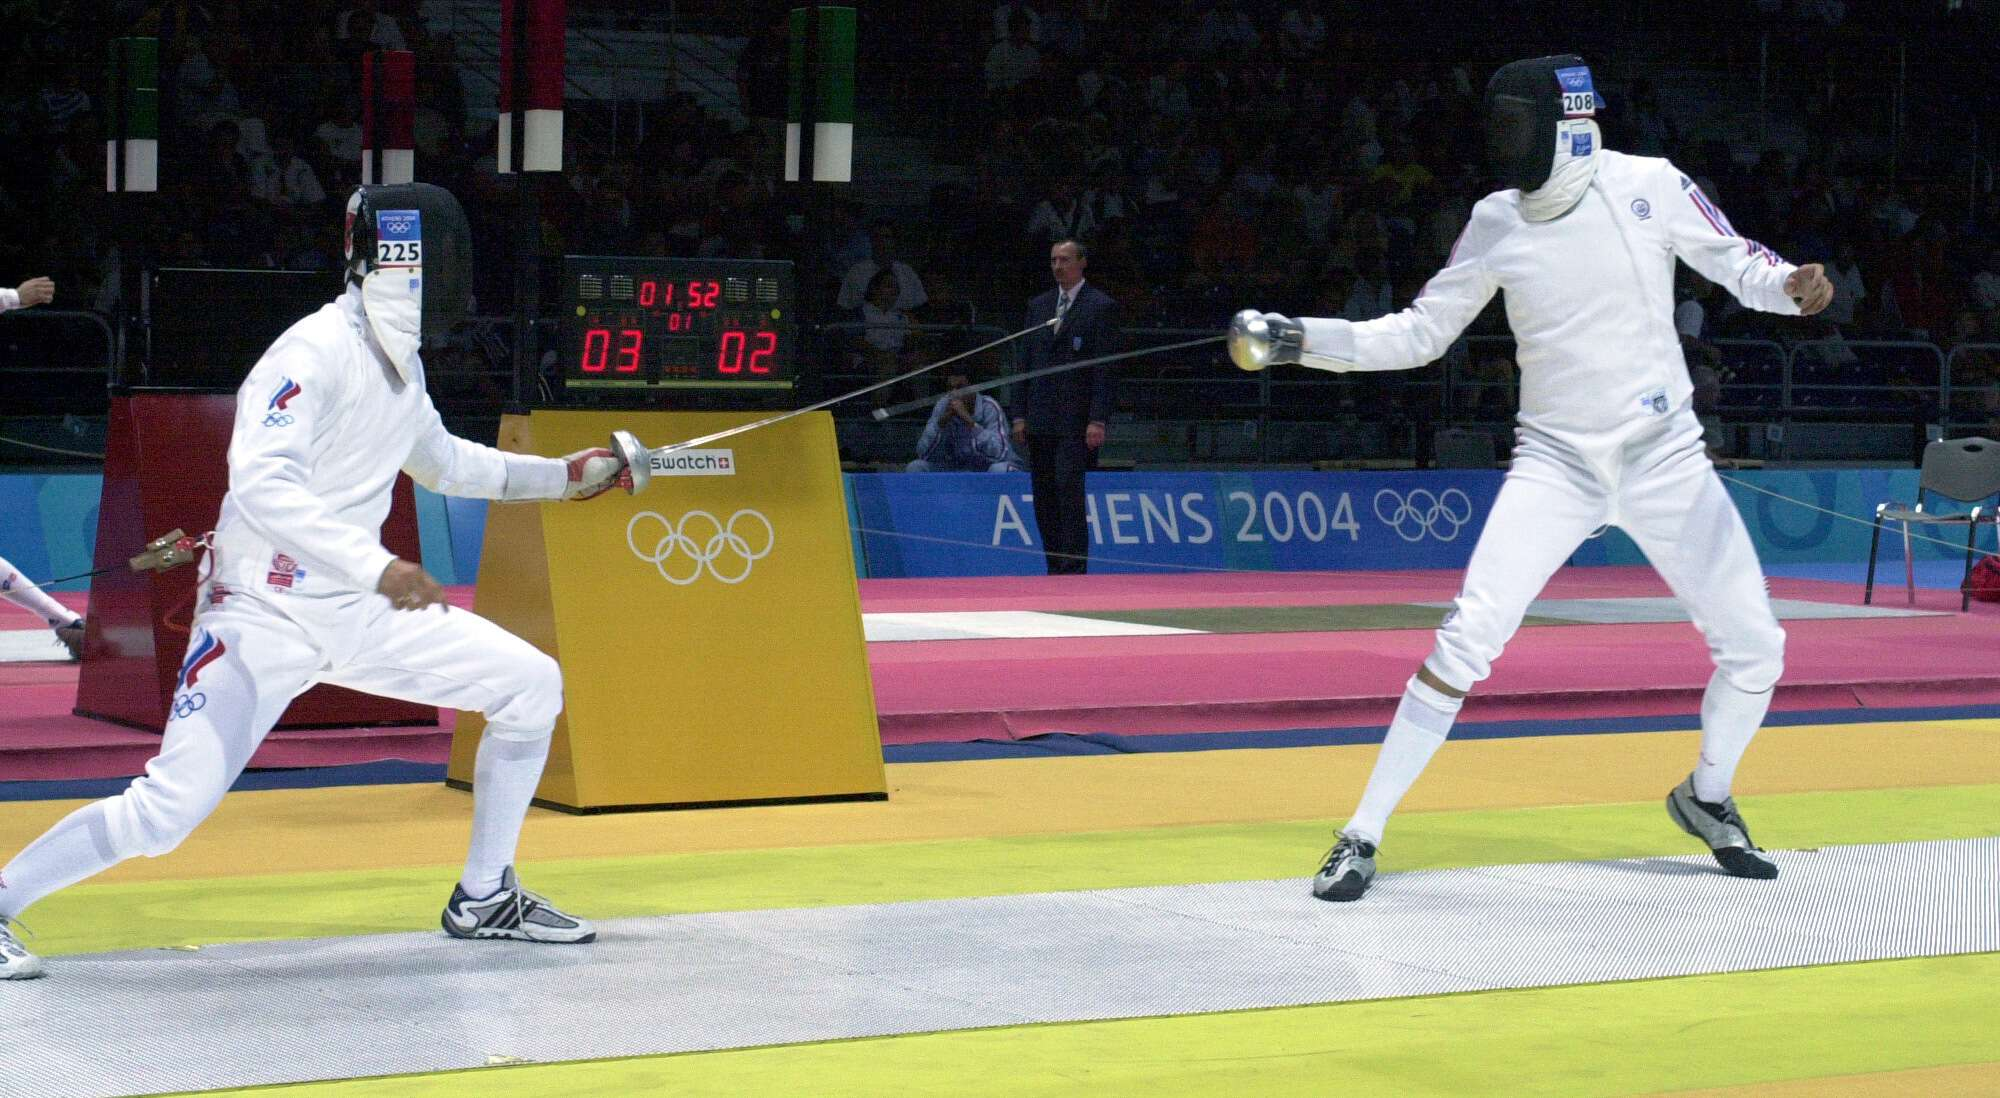 fencing athens 2004 sport image page (2)